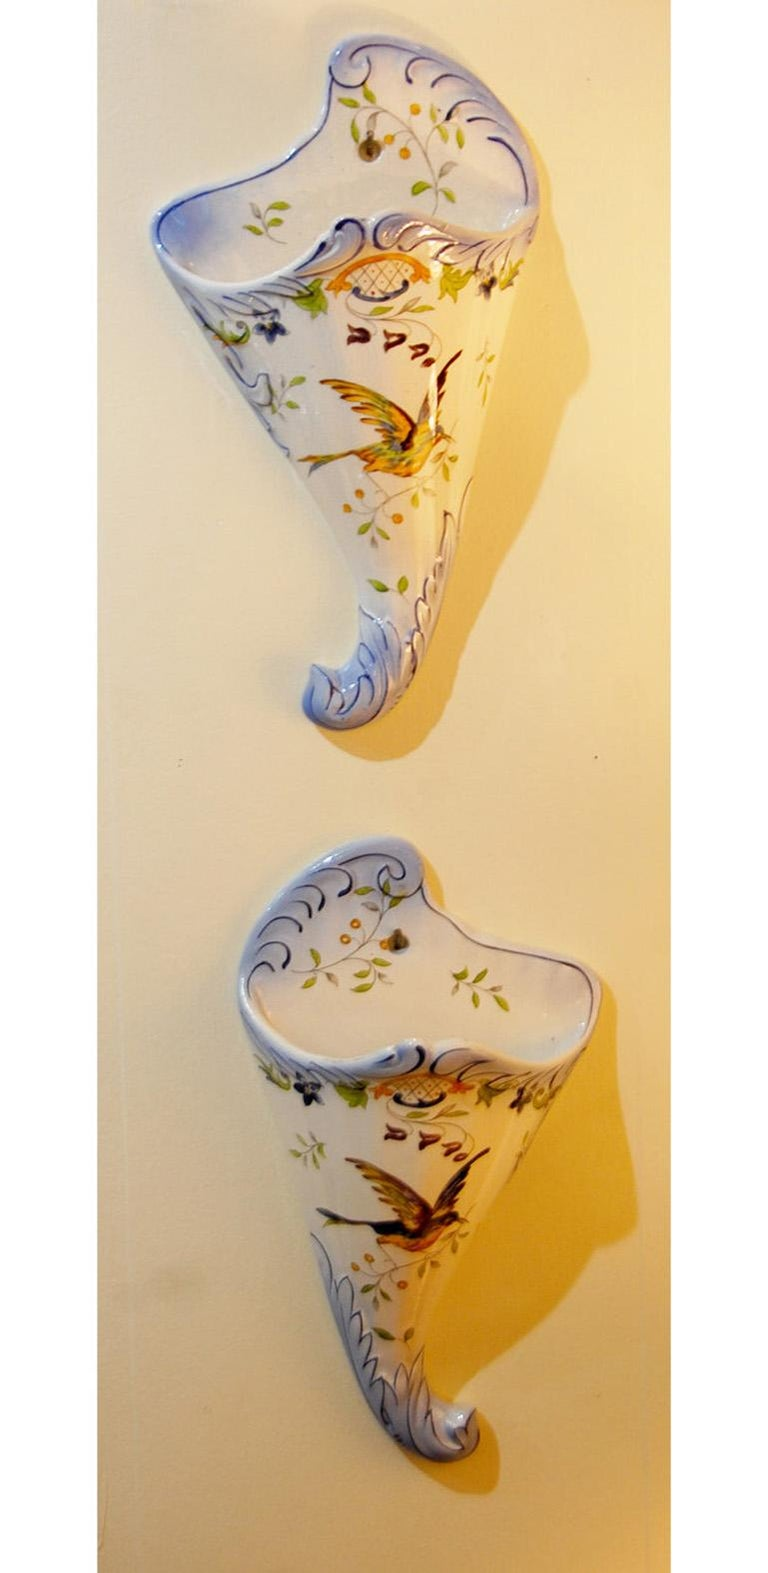 French 19th century Longchamp pair of faience hand painted wall pockets with bird and flower motifs, molded leaves to edges, cornucopia form. Crackleware glaze. Impressed mark: Longchamp Terre de Fer. Late 19th century.